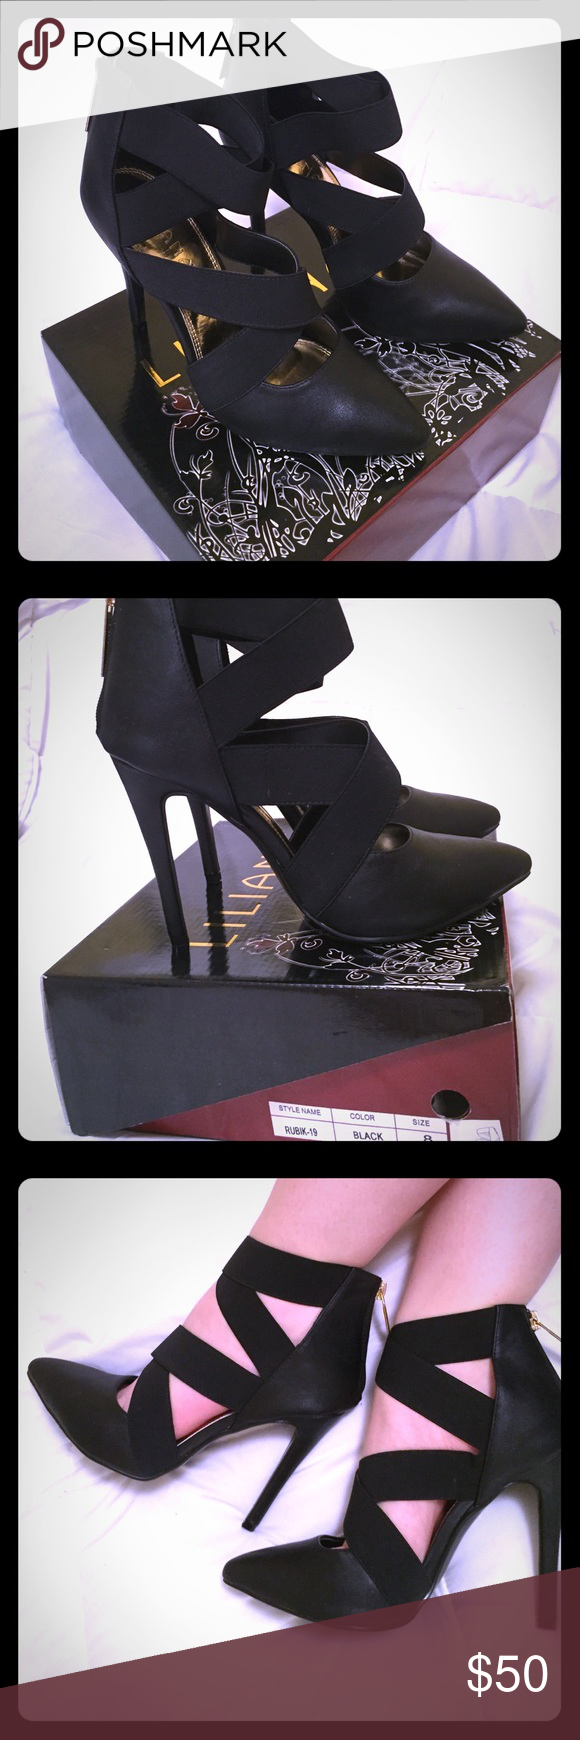 2e9d2f2c7aa Black Leather Pointed Toe Heels Brand new black leather heels! Never worn  except to try